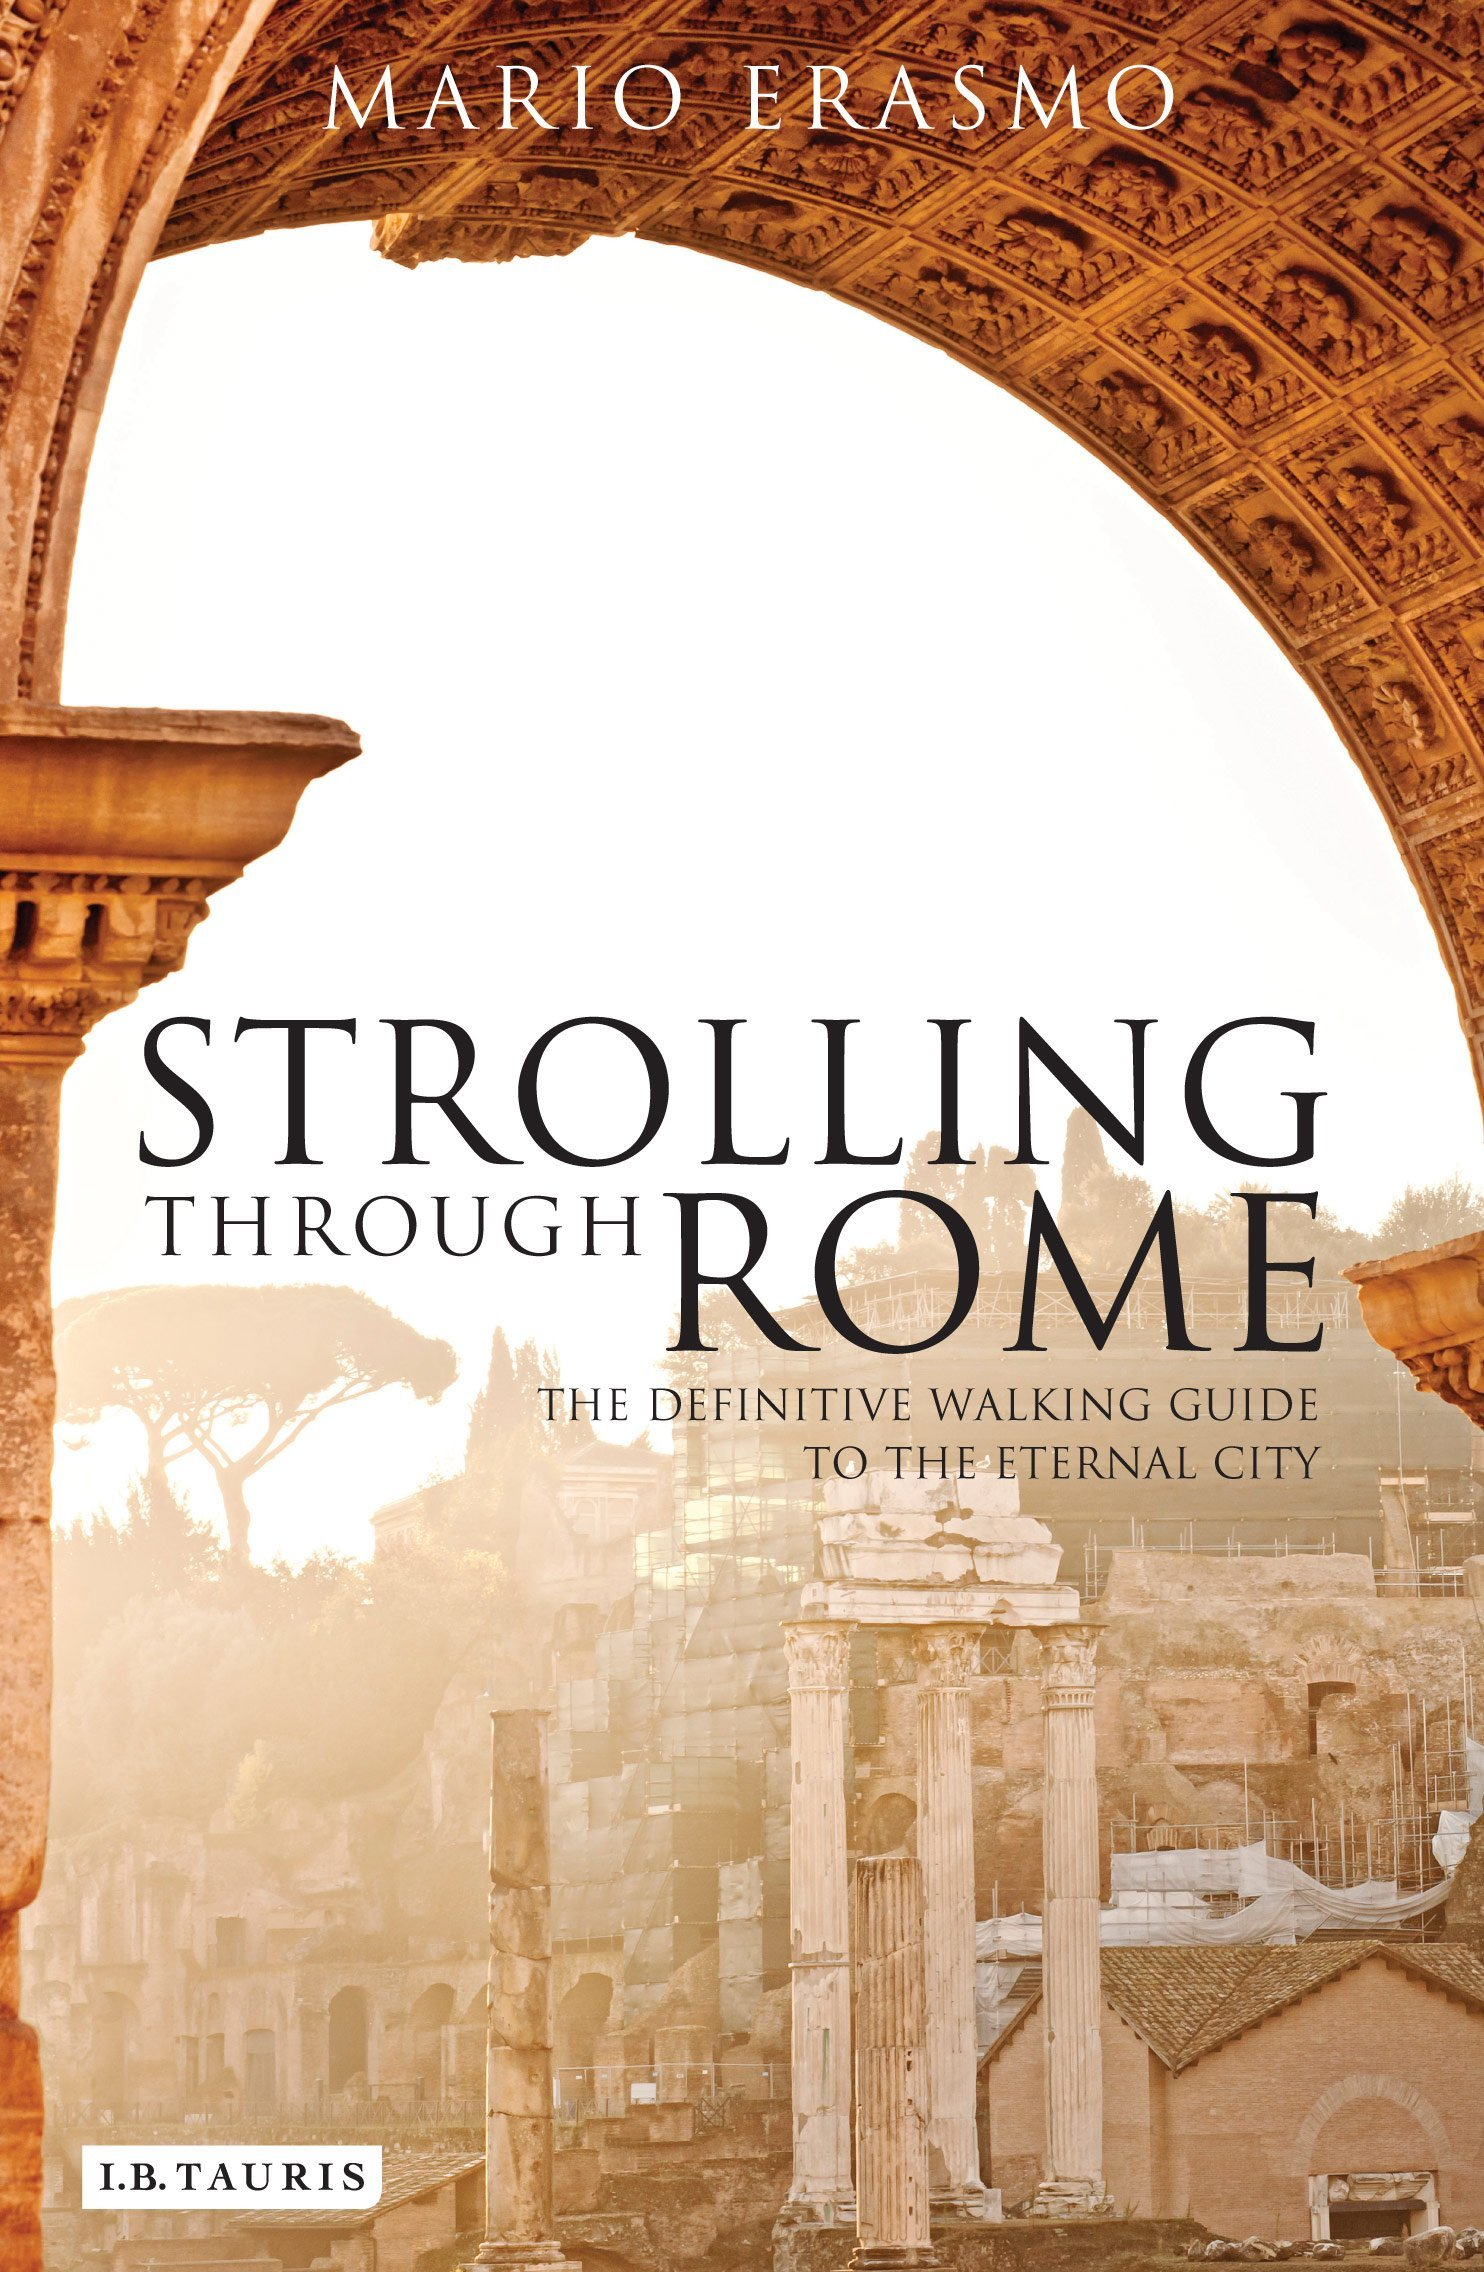 strolling-through-rome-the-definitive-walking-guide-to-the-eternal-city